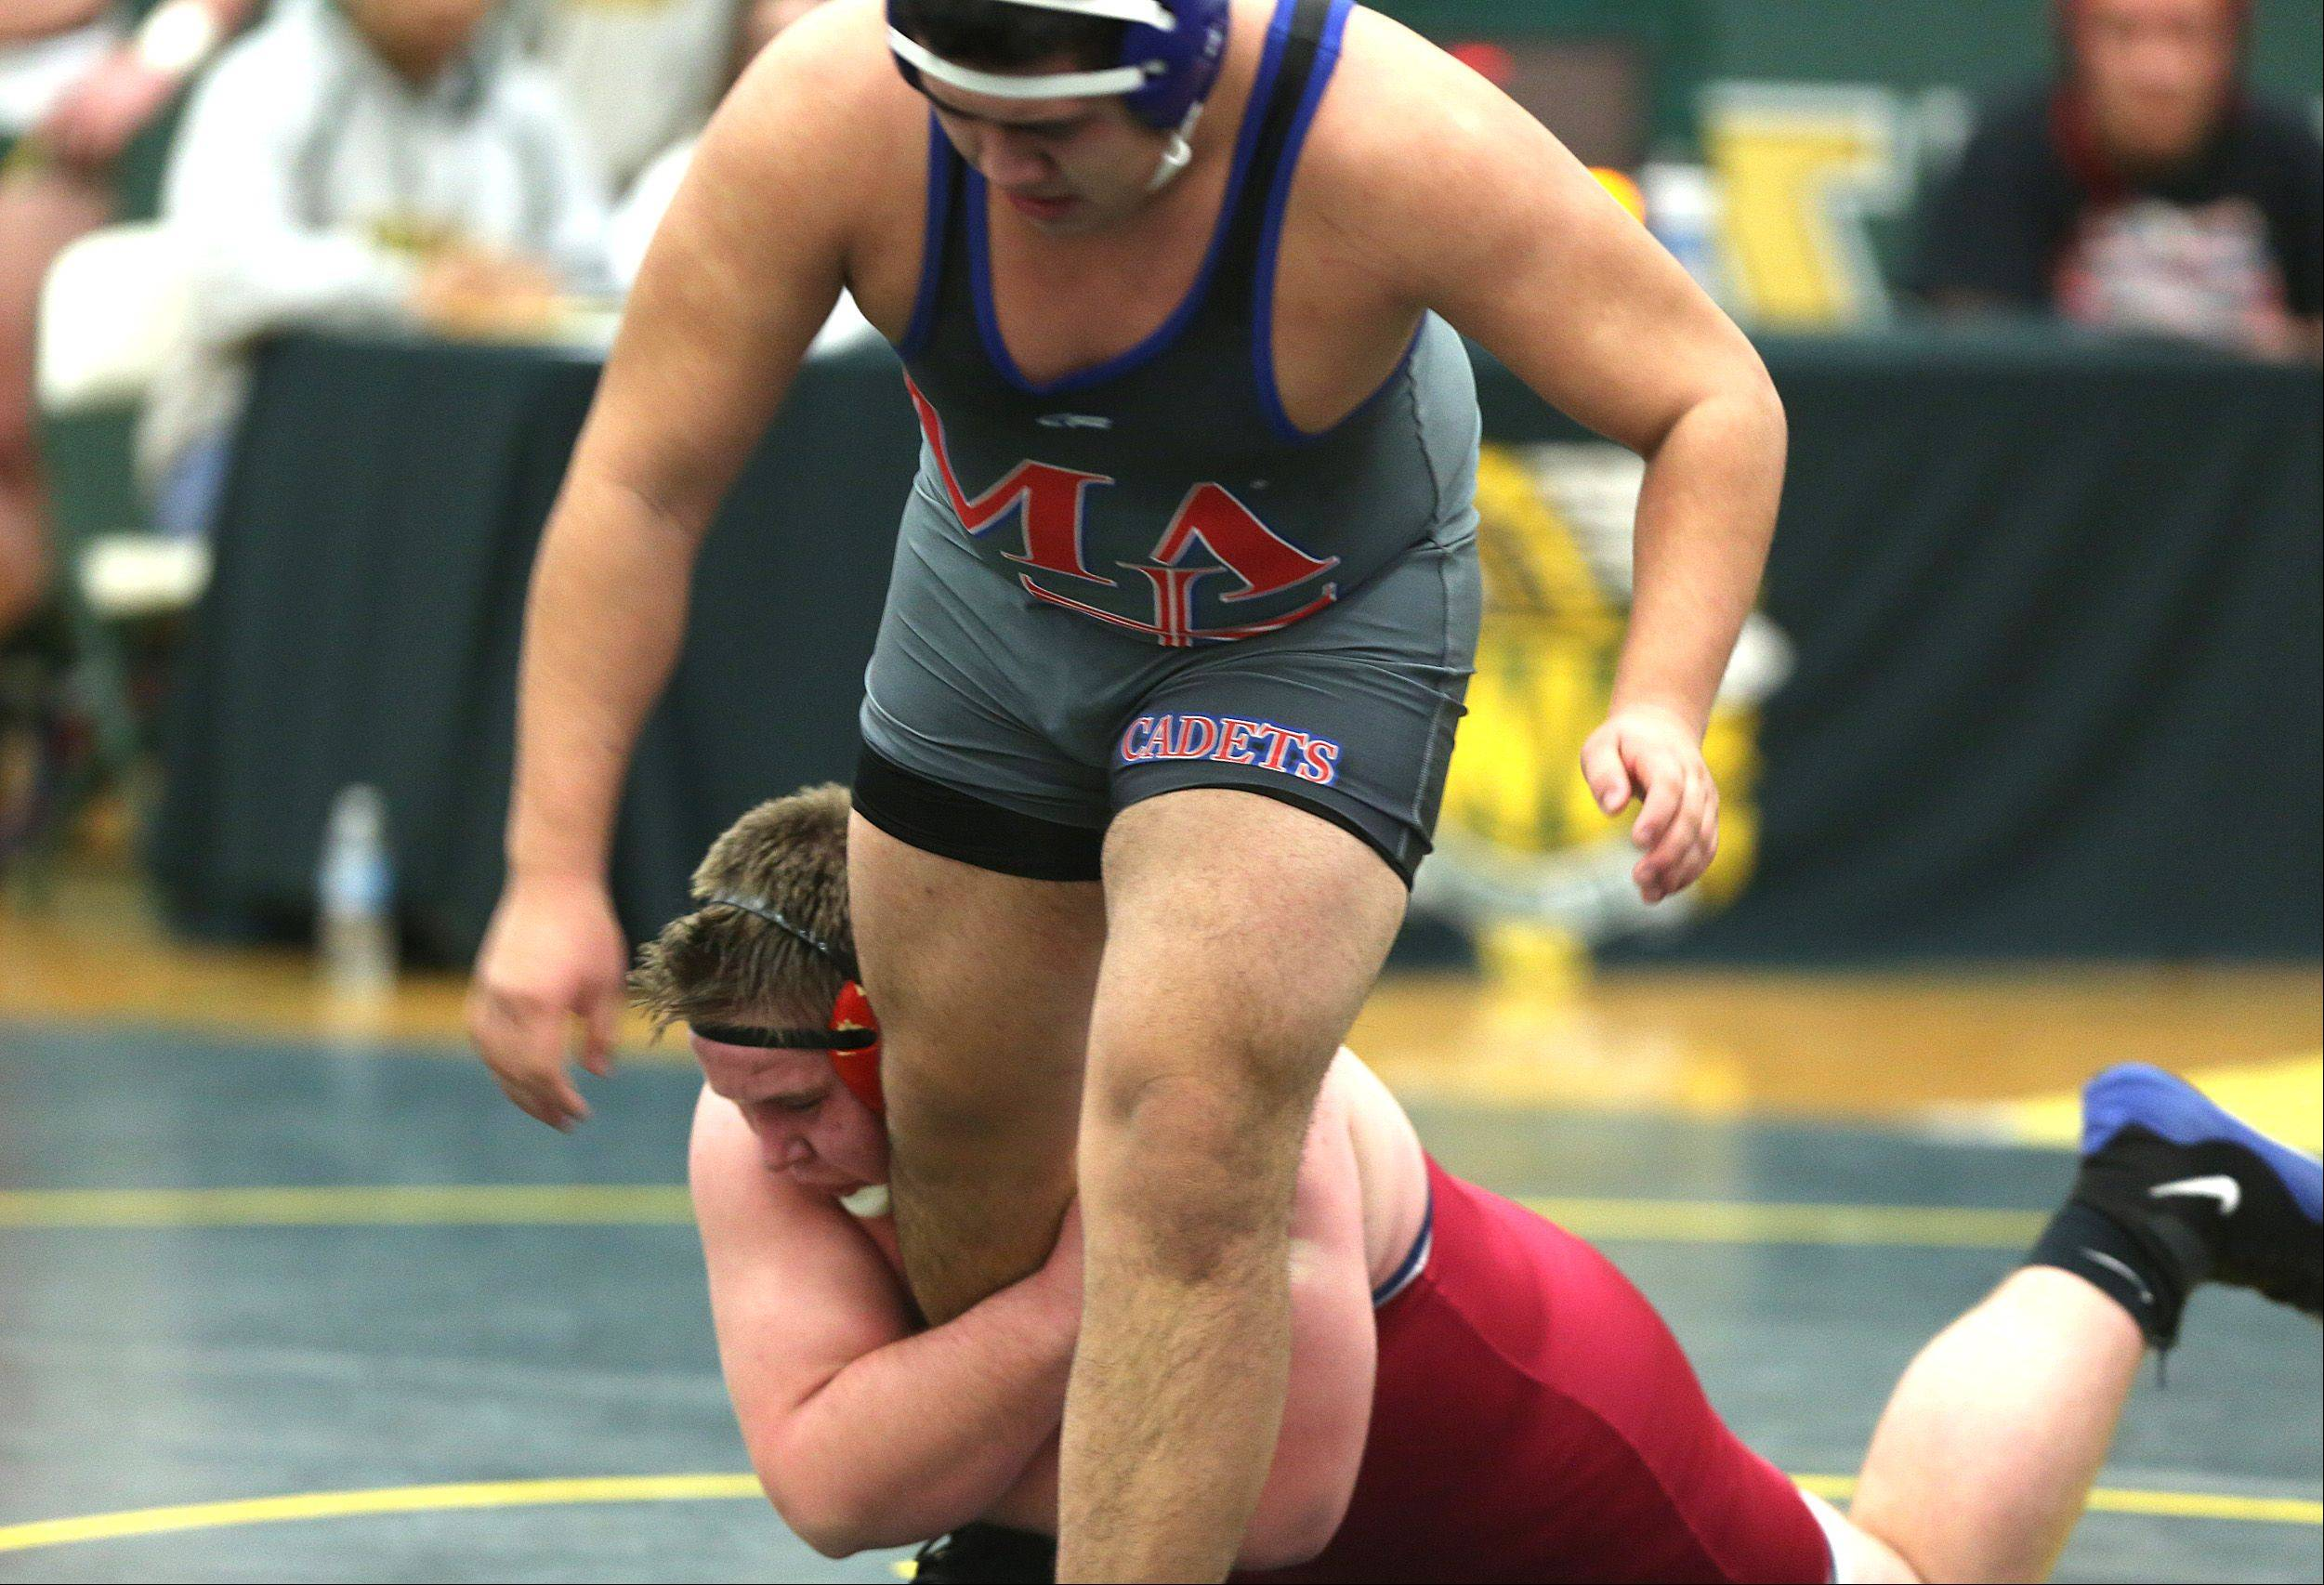 West Aurora's Sam Deisher grabs a hold of Marmion's Oscar Garza in the 285 pound class during regional wrestling at Waubonsie Valley High School.